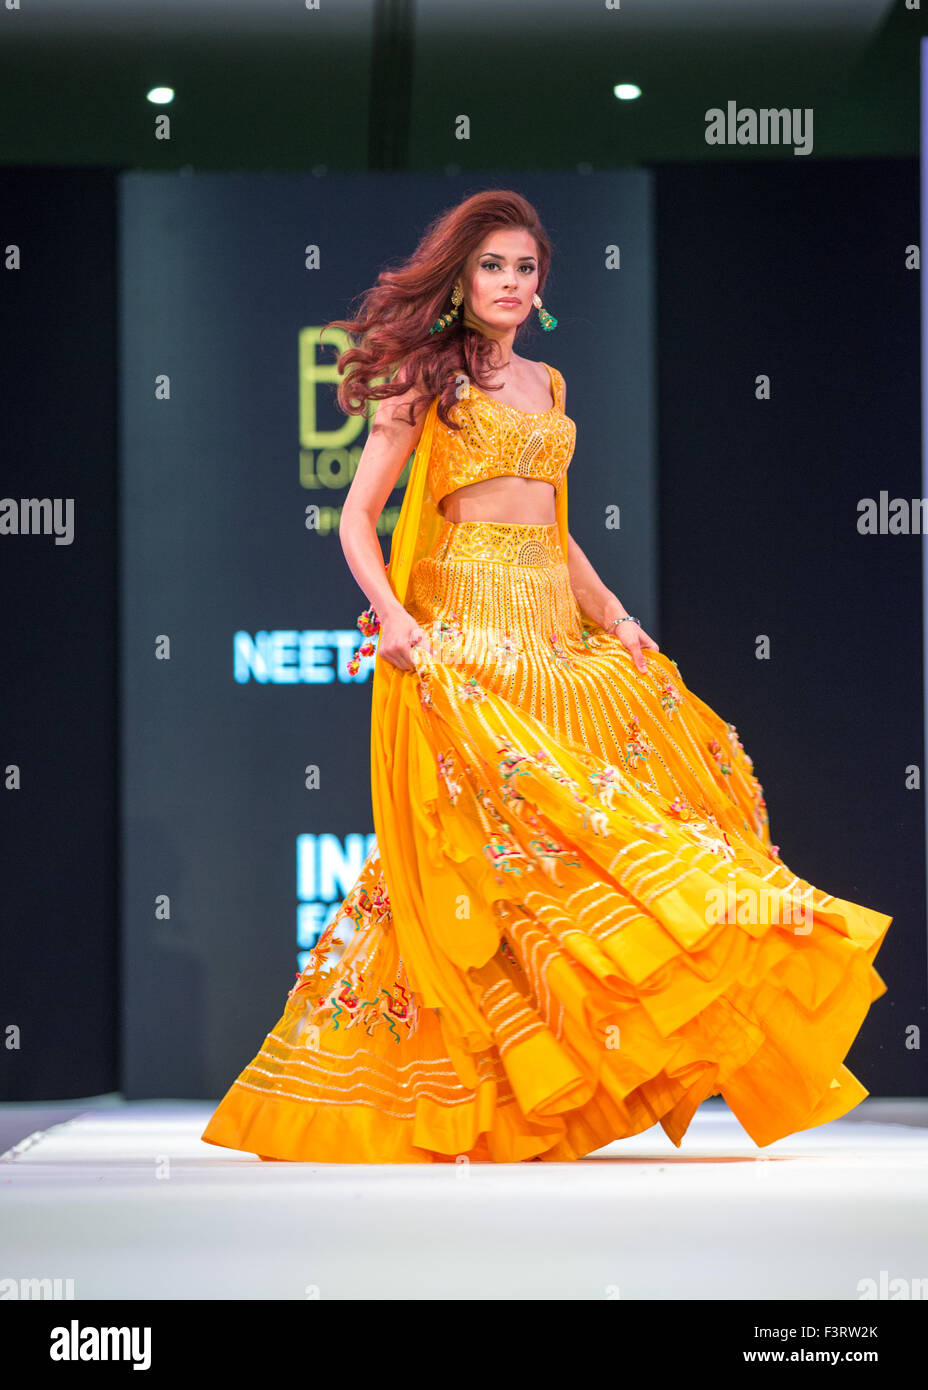 Opening night of inaugural India Fashion Week London. Neeha Dupia attends. - Stock Image